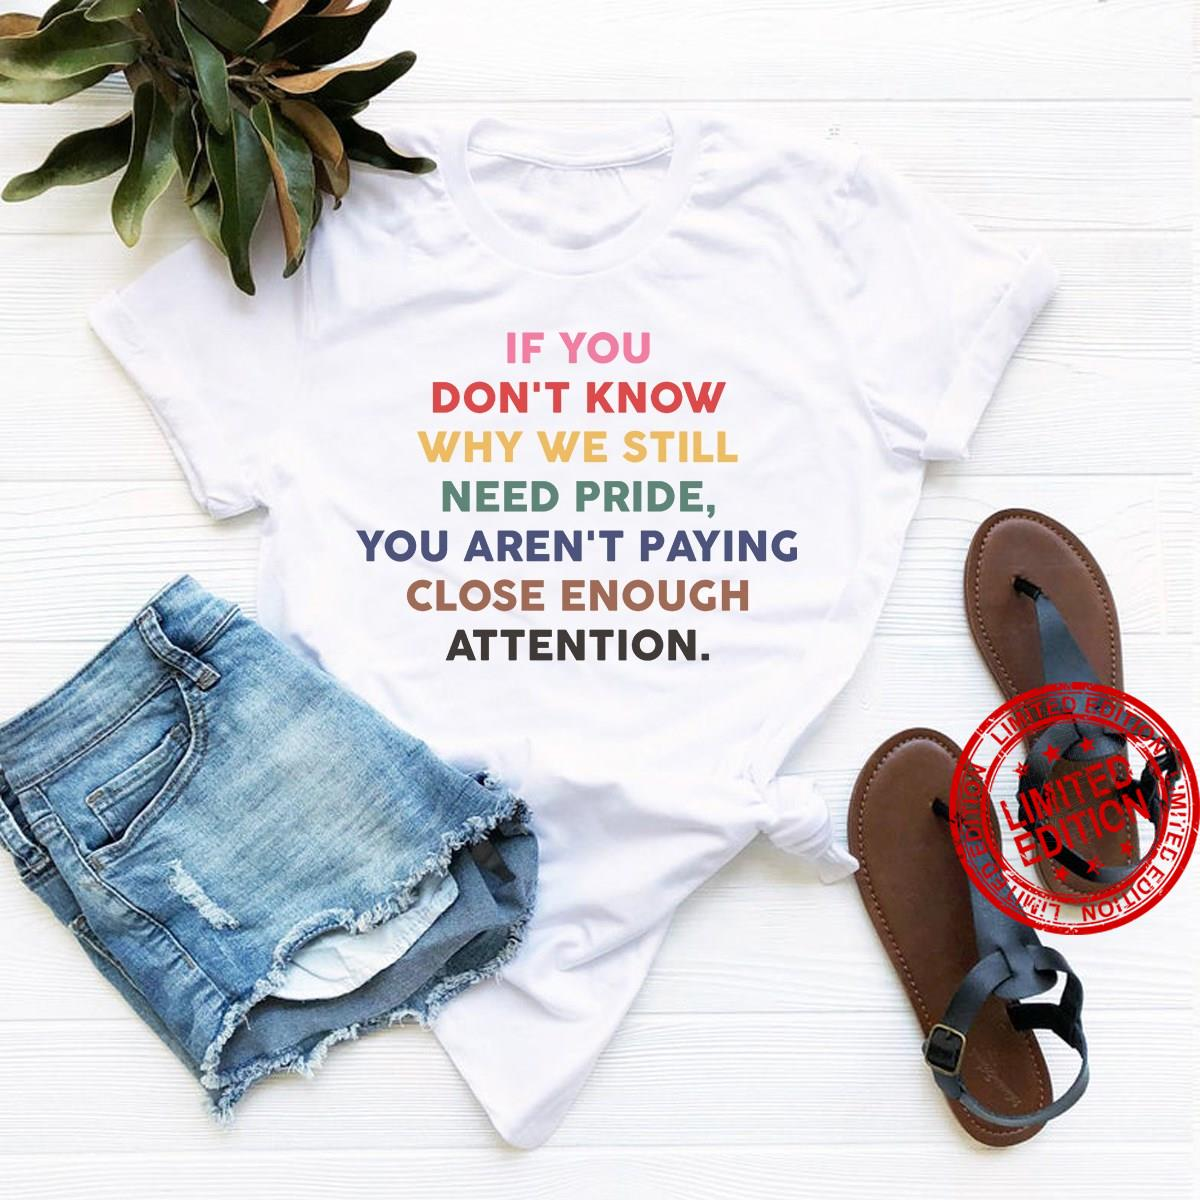 If You Don't Know Why We Still Need Pride You Aren't Paying Close Enough Attention Shirt